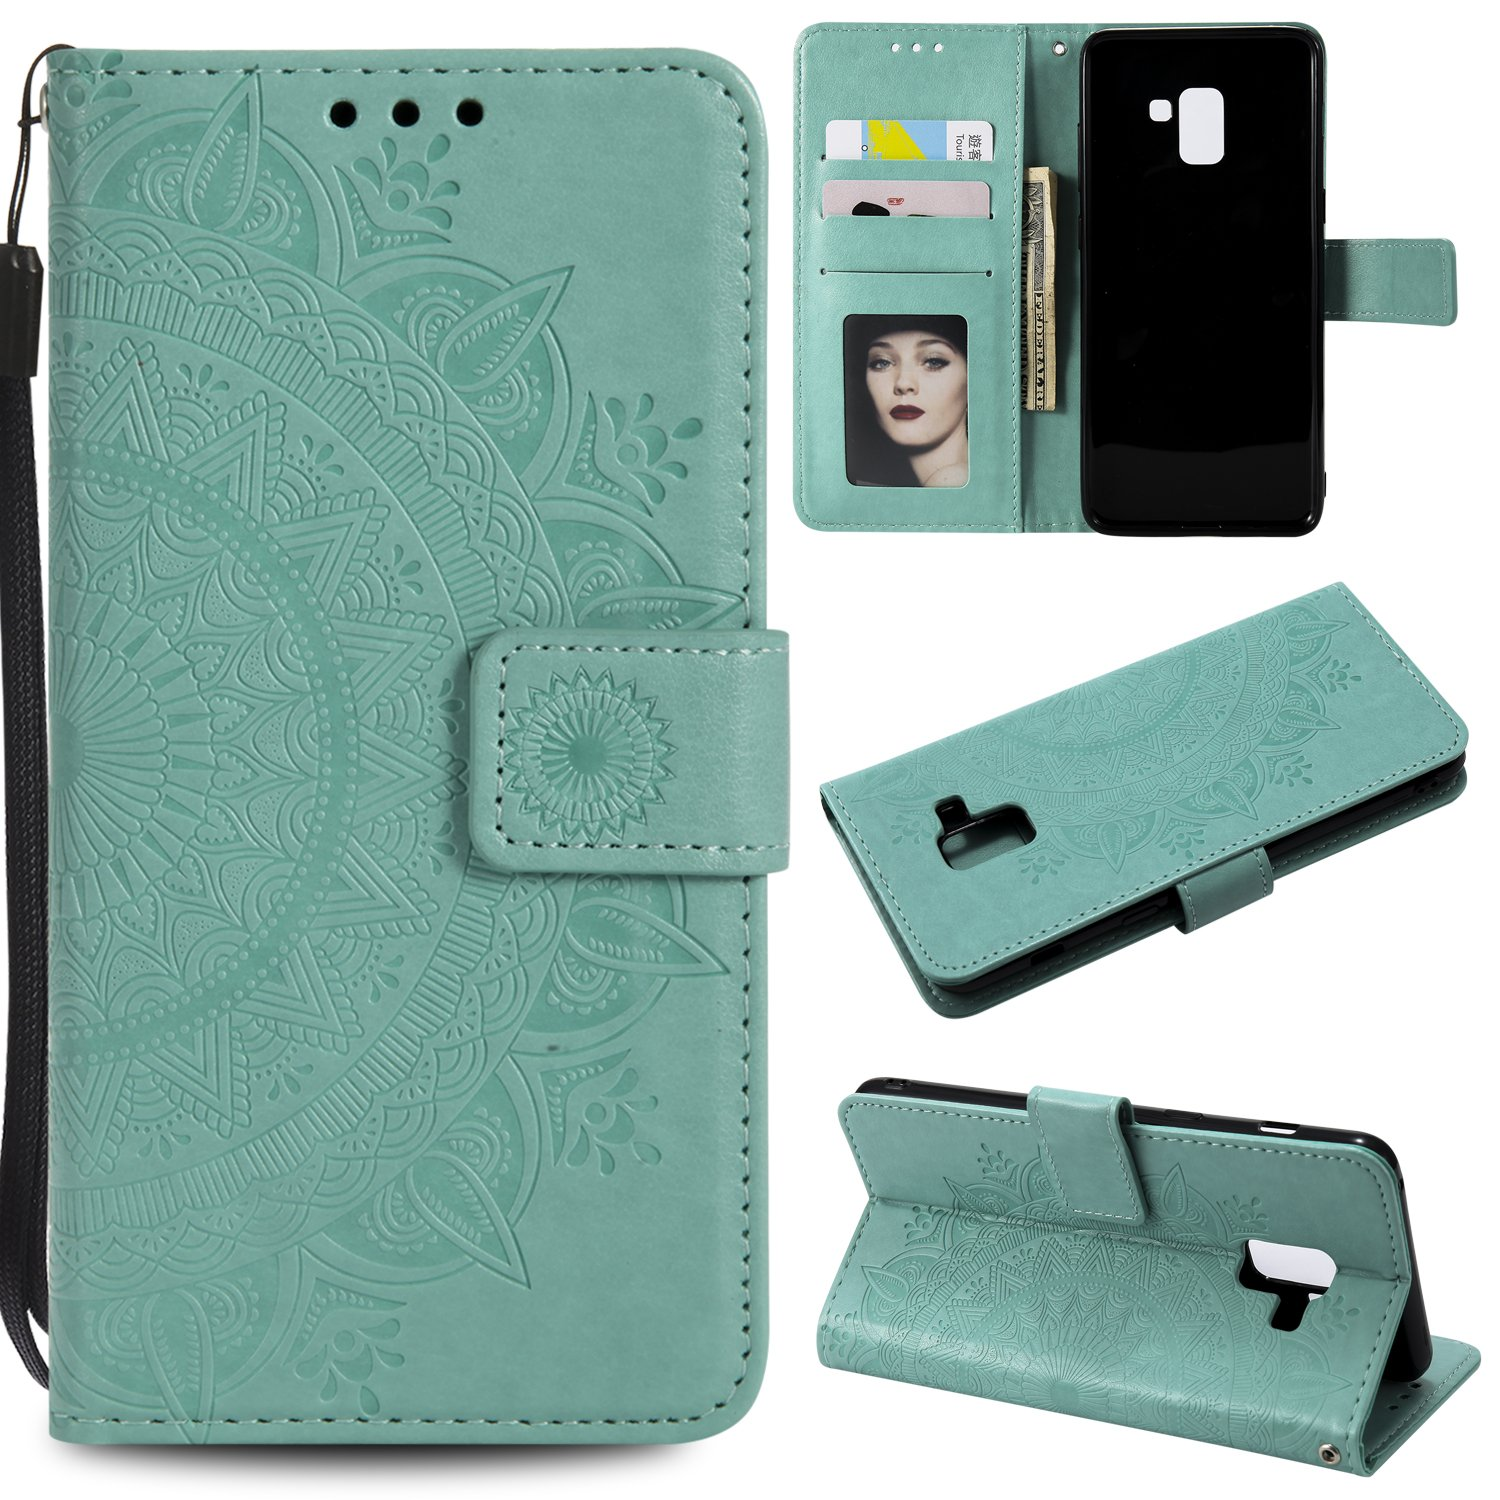 Galaxy A8 2018 Floral Wallet Case,Galaxy A8 2018 Strap Flip Case,Leecase Embossed Totem Flower Design Pu Leather Bookstyle Stand Flip Case for Samsung Galaxy A8 2018-Green